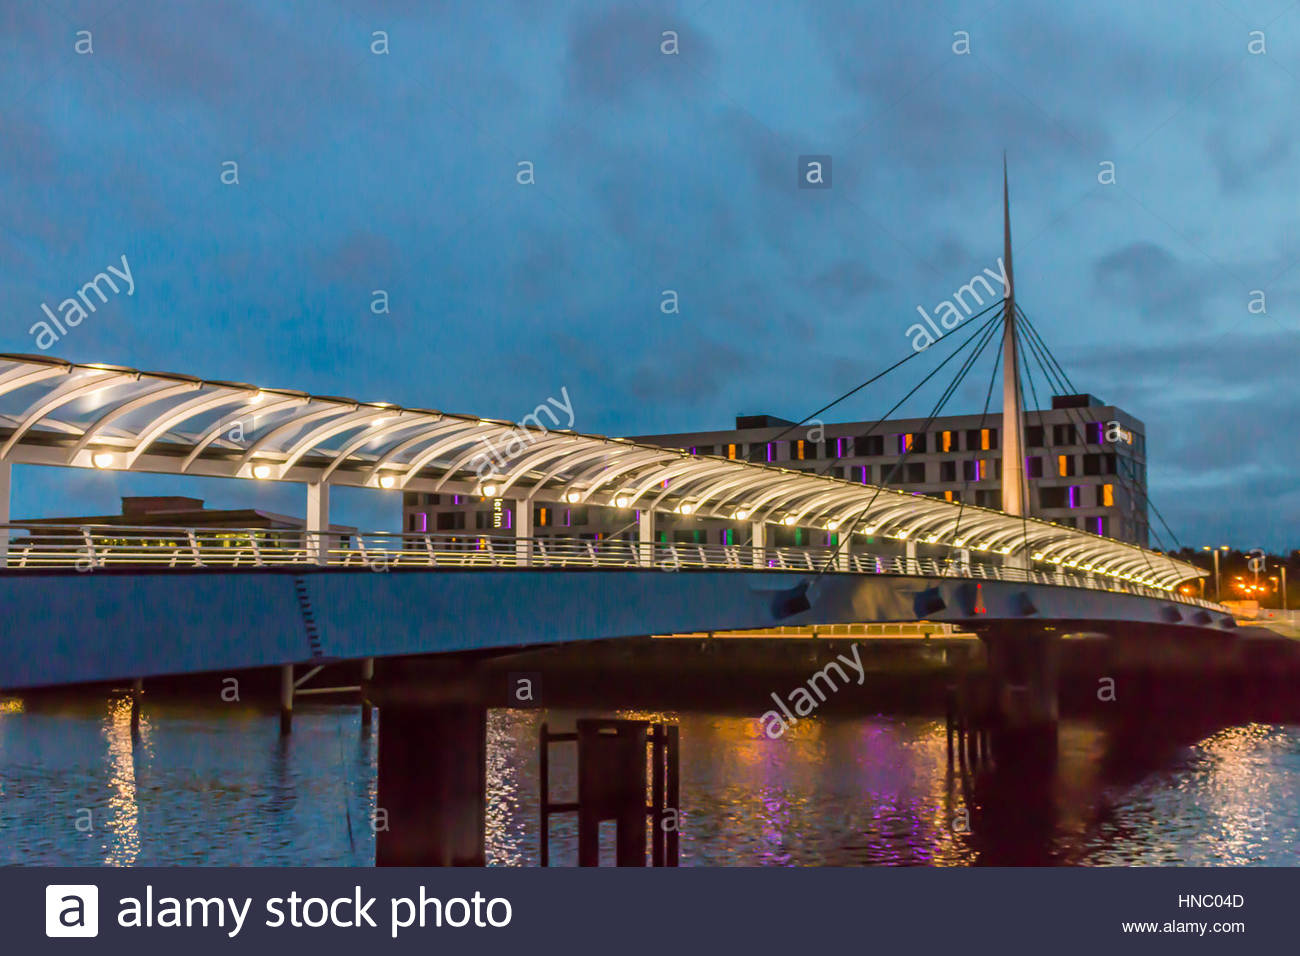 Bell's Bridge over the River Clyde, with BBC Scotland building. - Stock Image